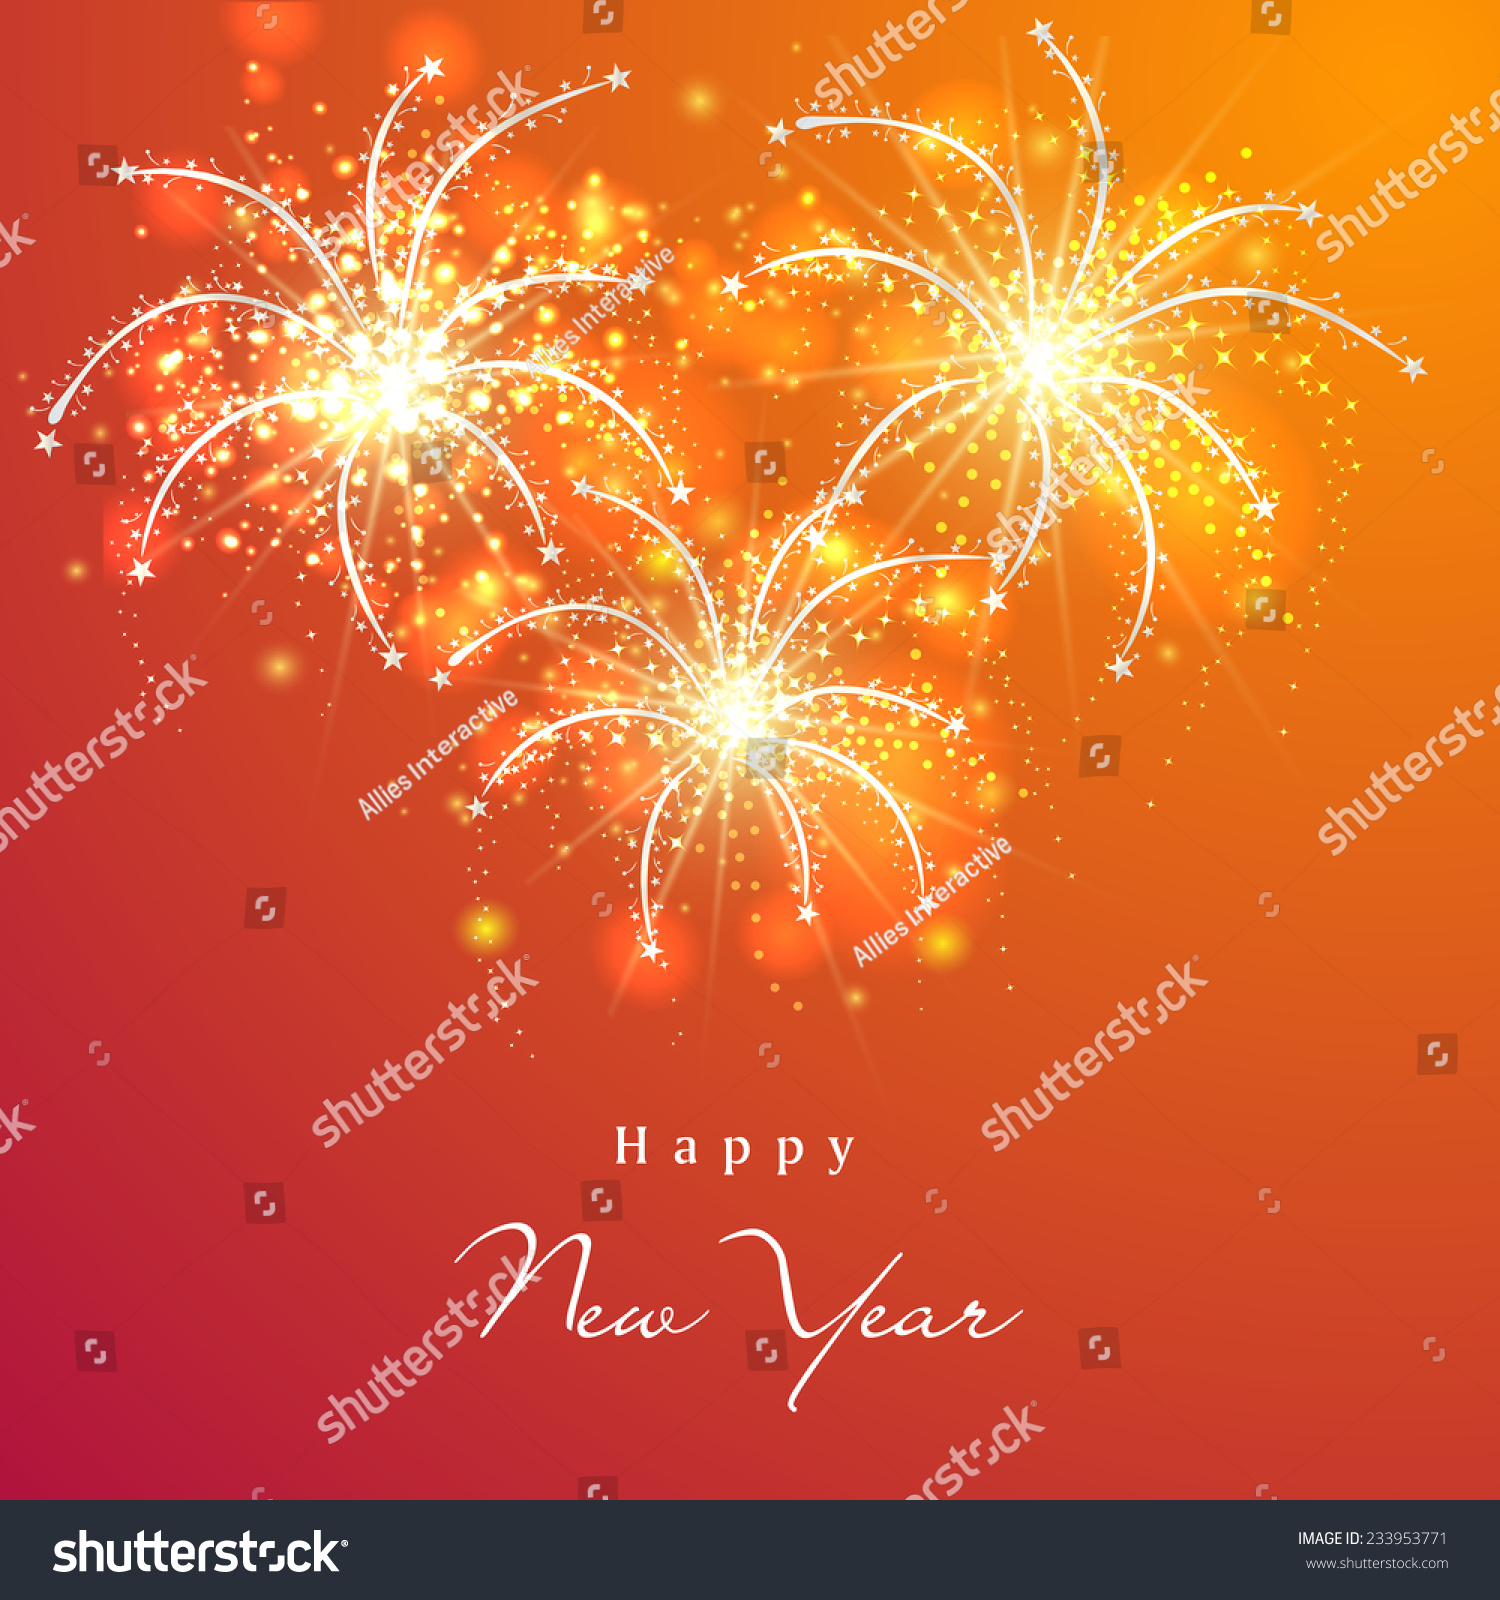 Happy New Year 2015 Celebration Greeting Stock Vector Royalty Free